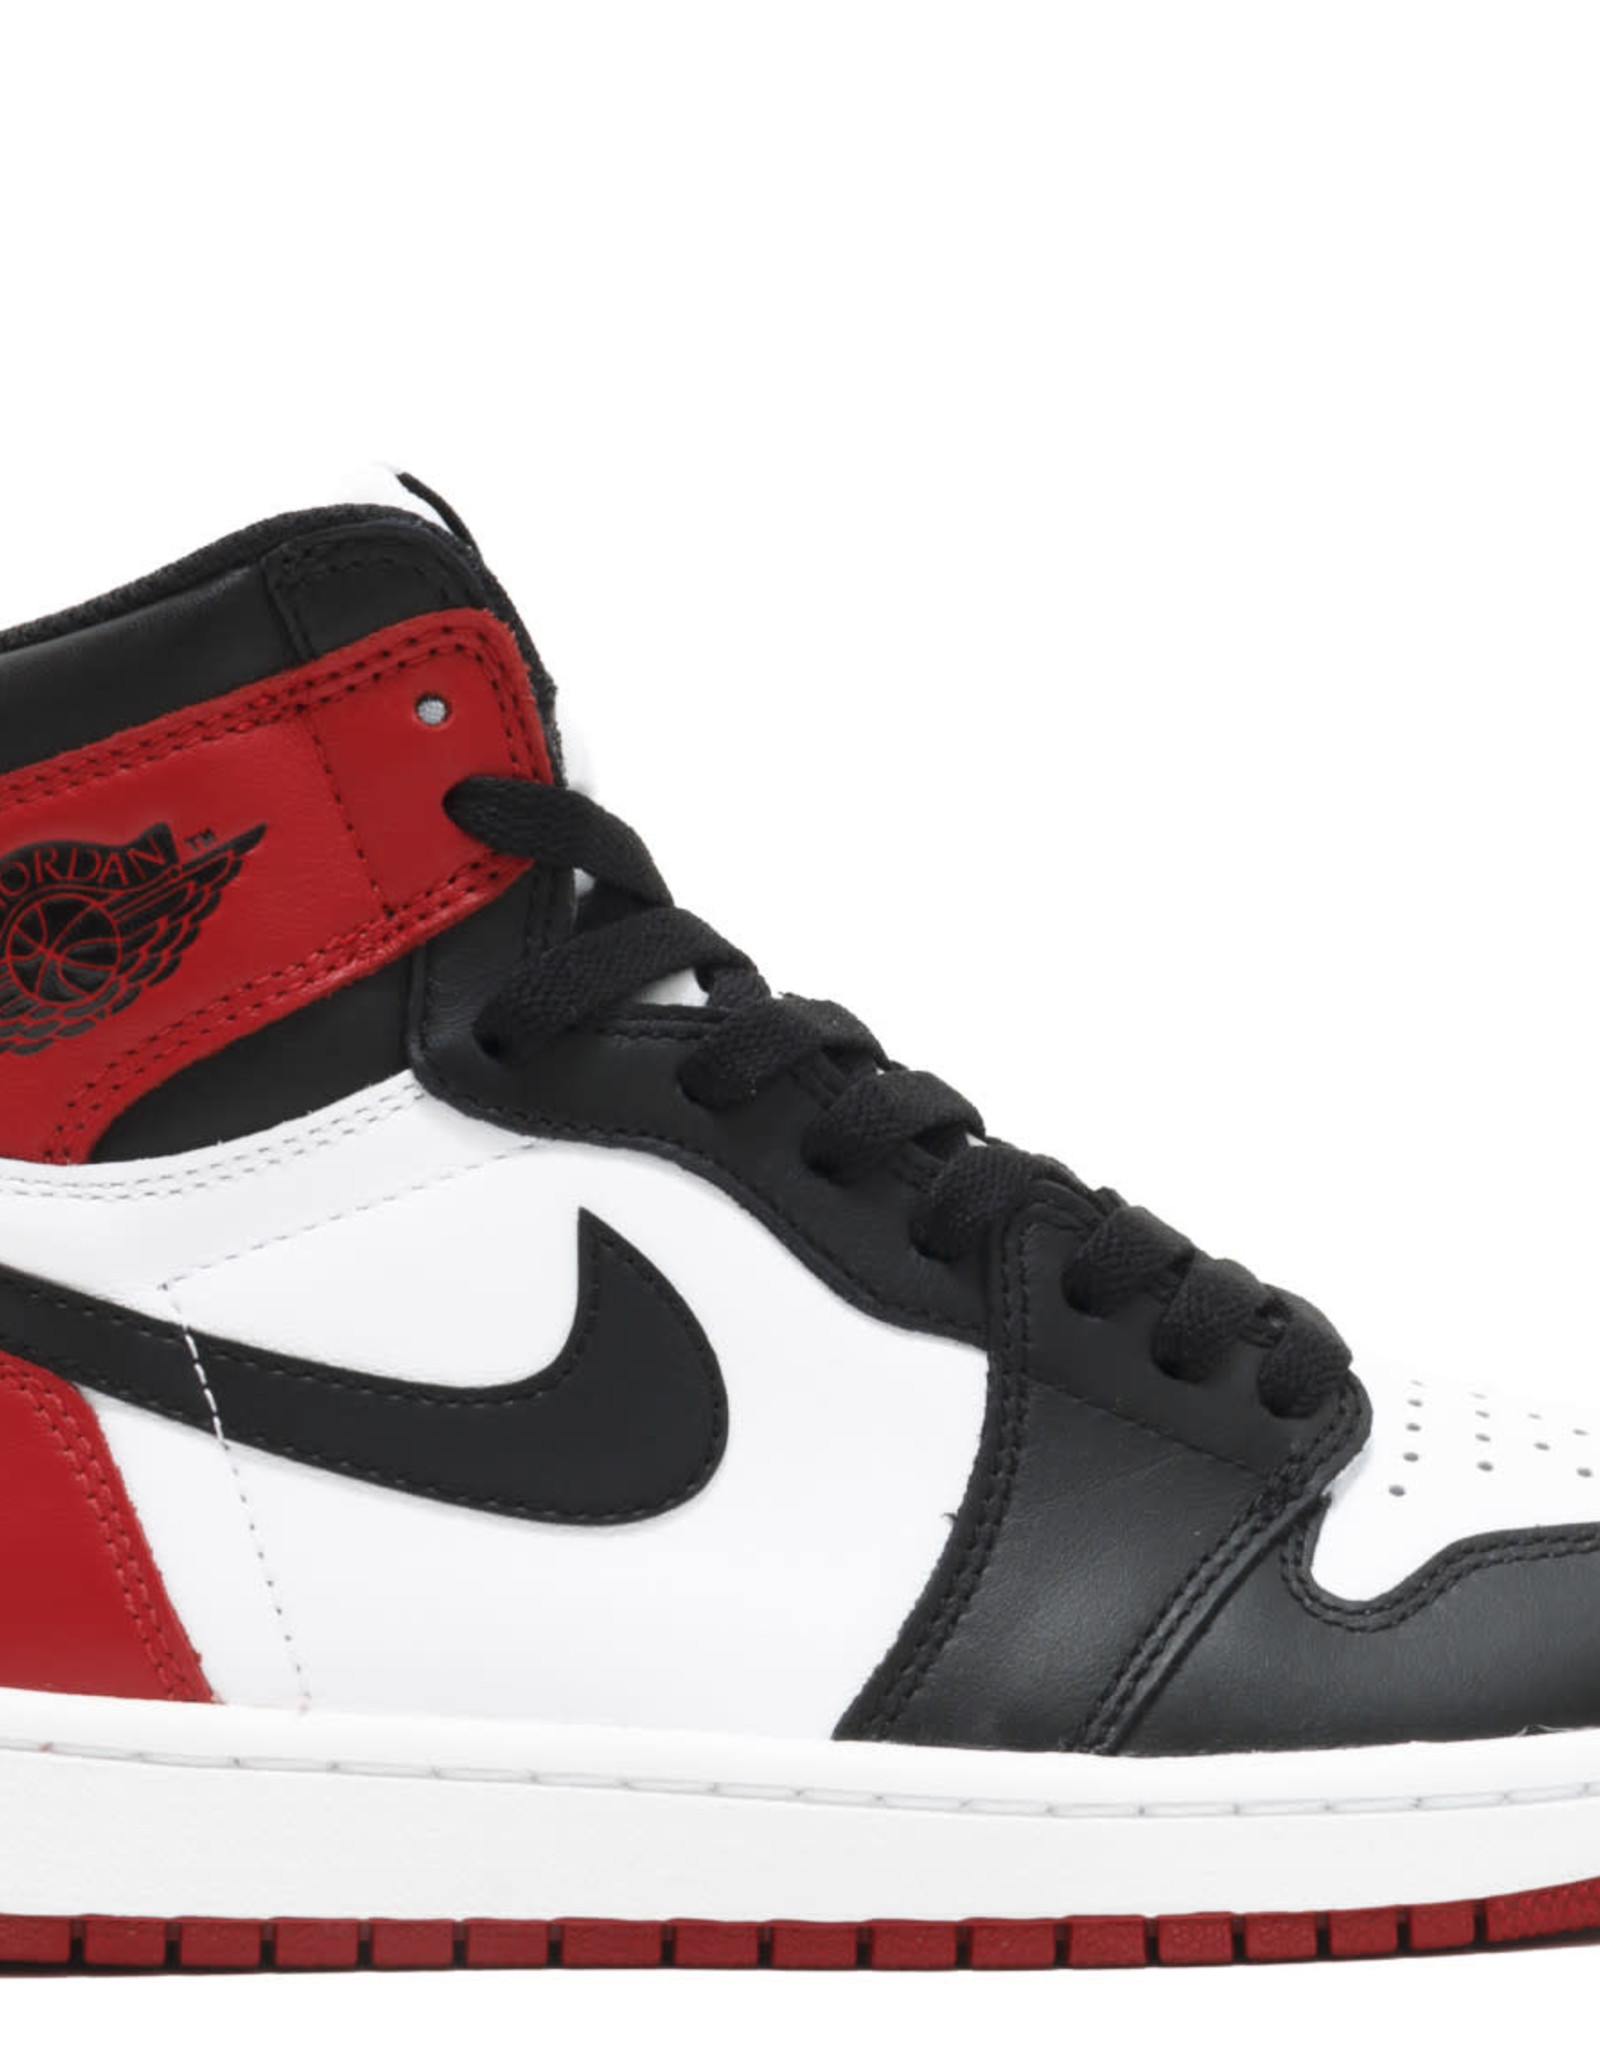 "JORDAN AIR JORDAN 1 RETRO HIGH OG ""BLACK TOE 2016 RELEASE"